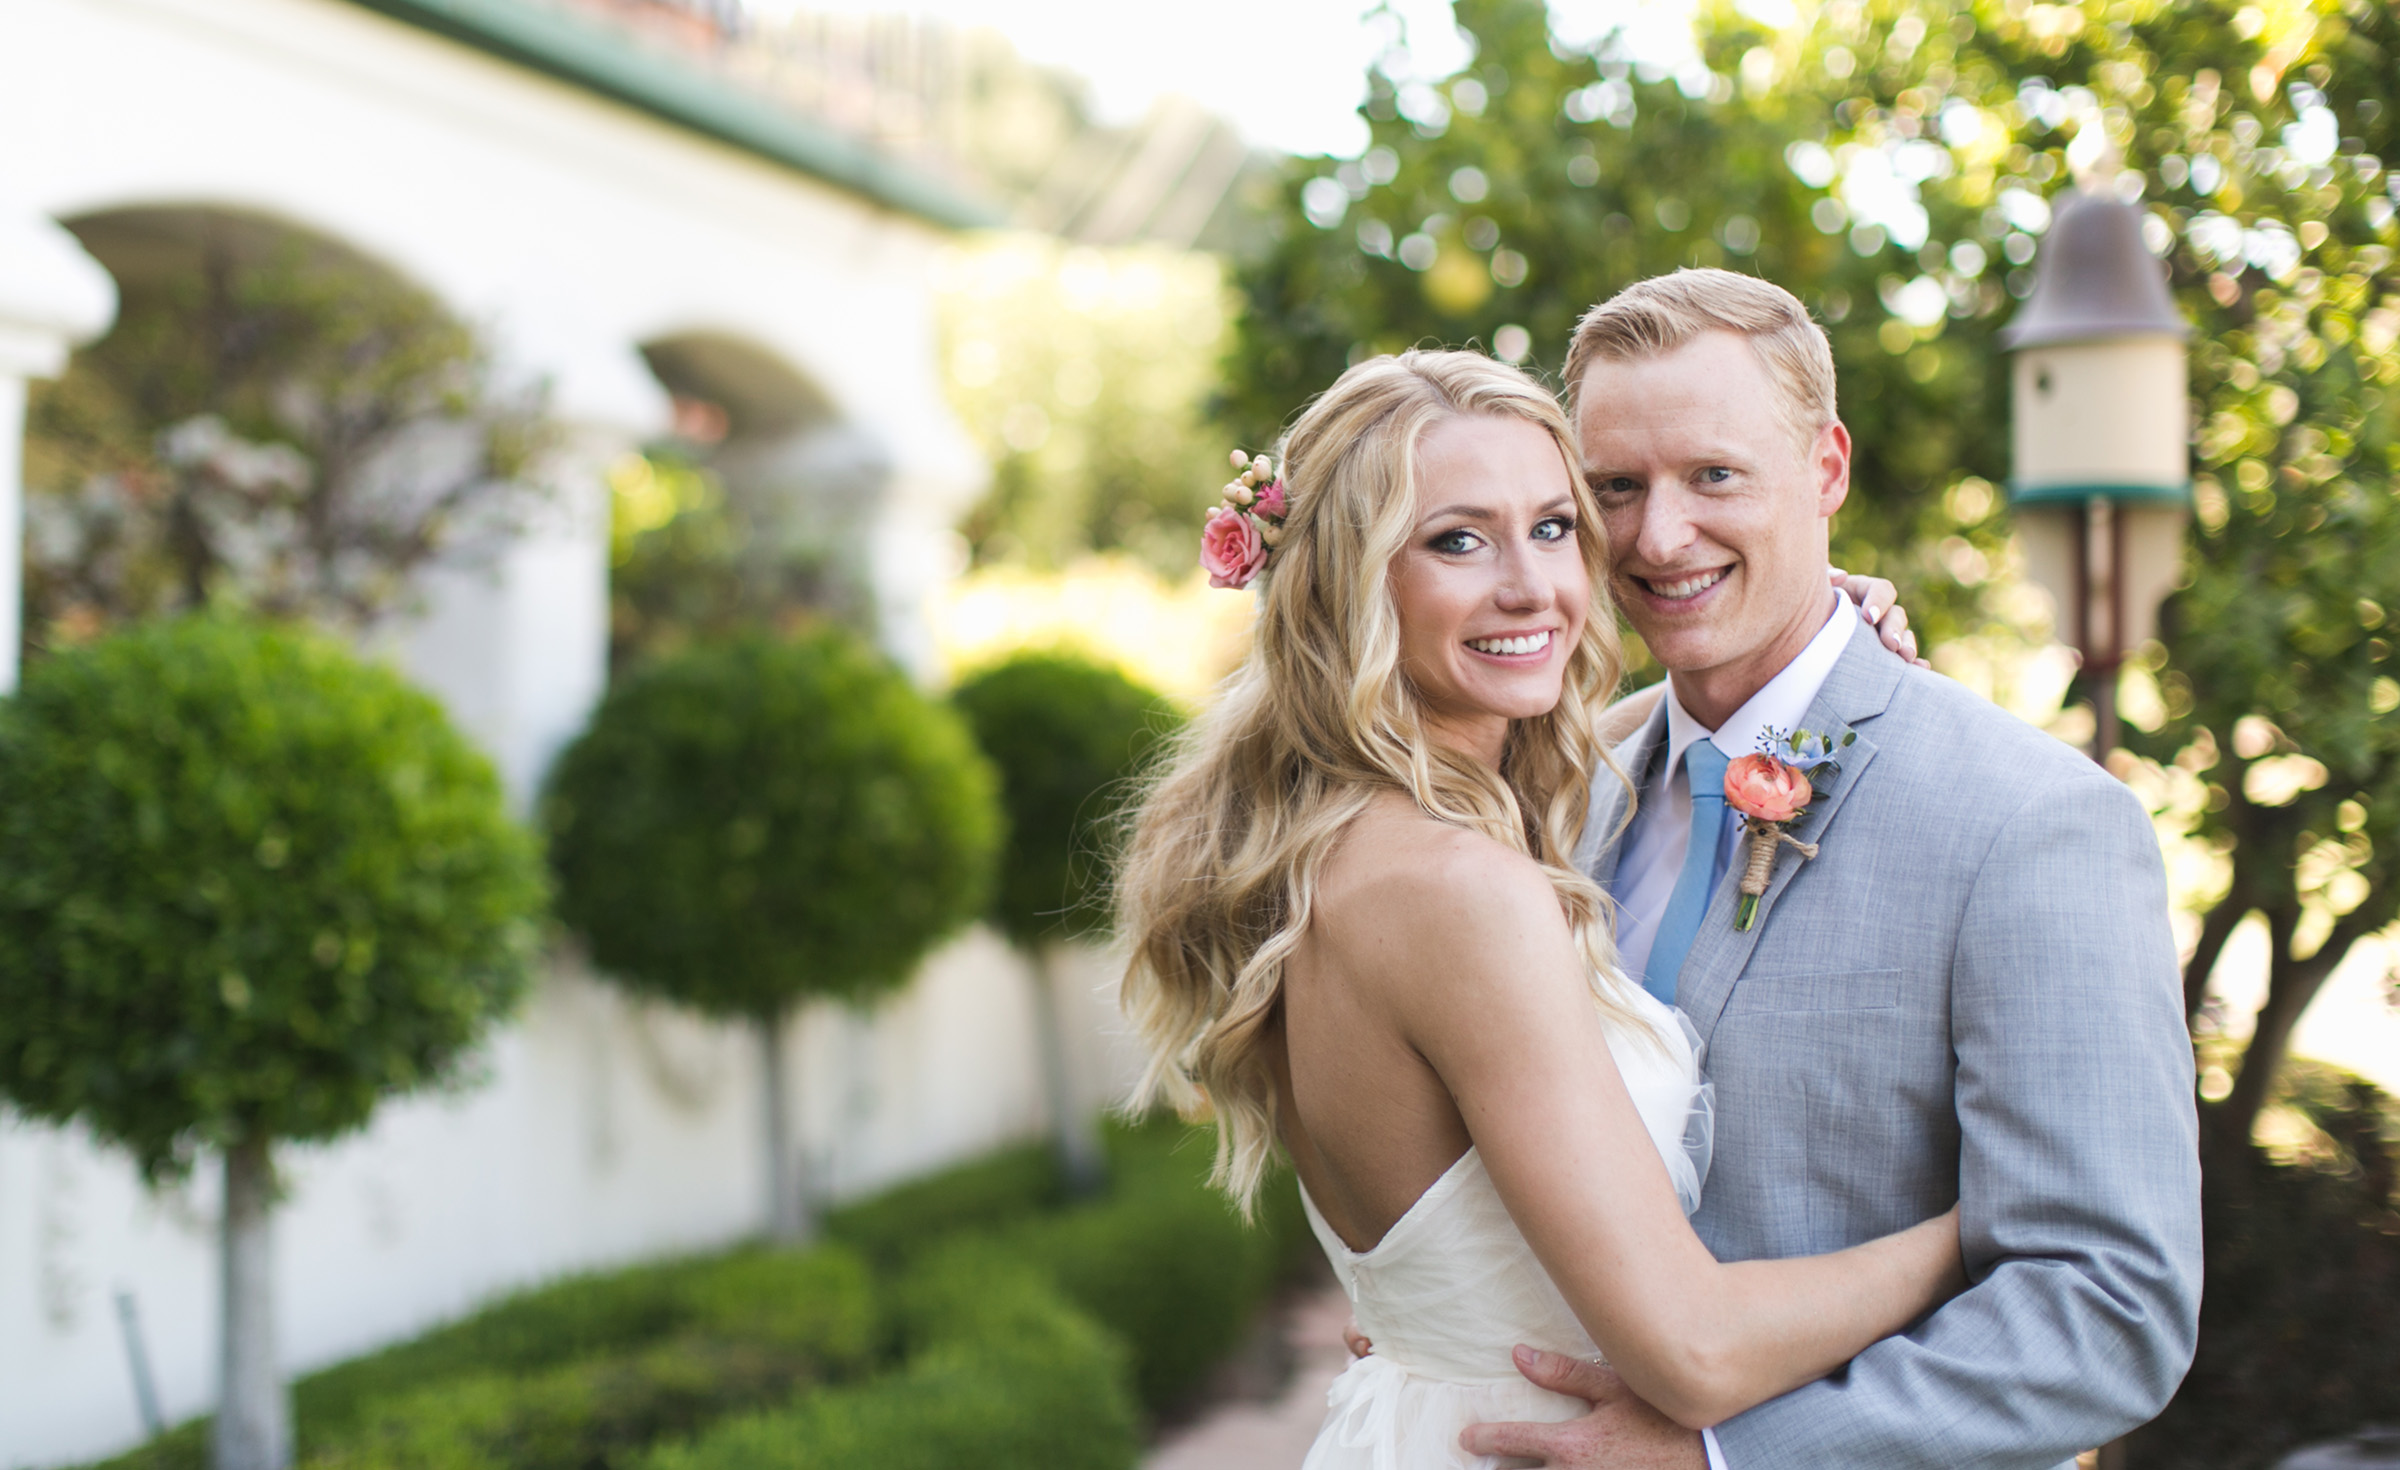 Couple in the garden - San Clemente - San Clemente, California - Orange County - Wedgewood Weddings